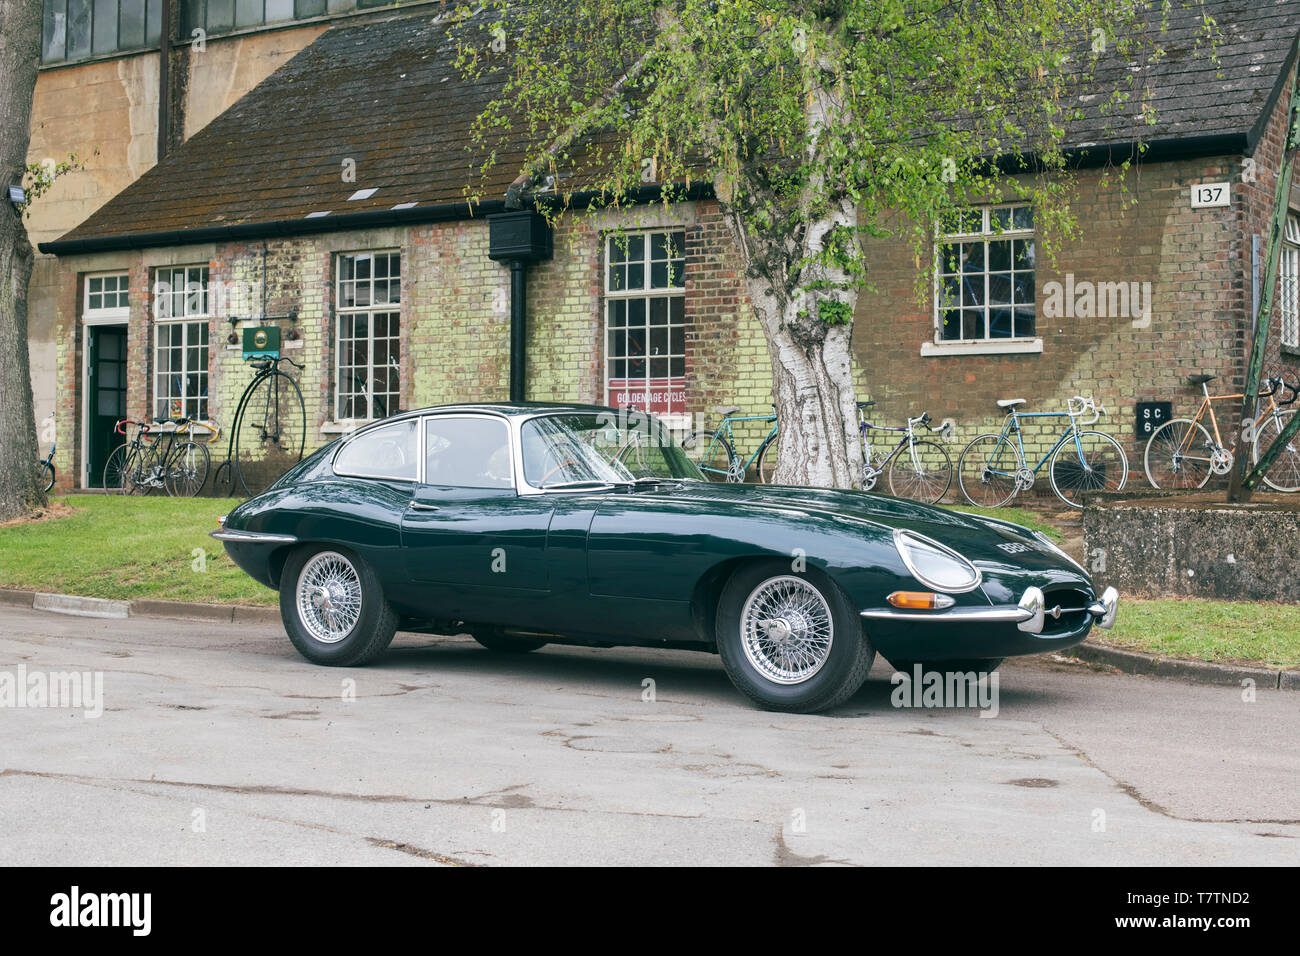 1965 E Type Jaguar car at Bicester Heritage centre 'Drive it day'. Bicester, Oxfordshire, England - Stock Image